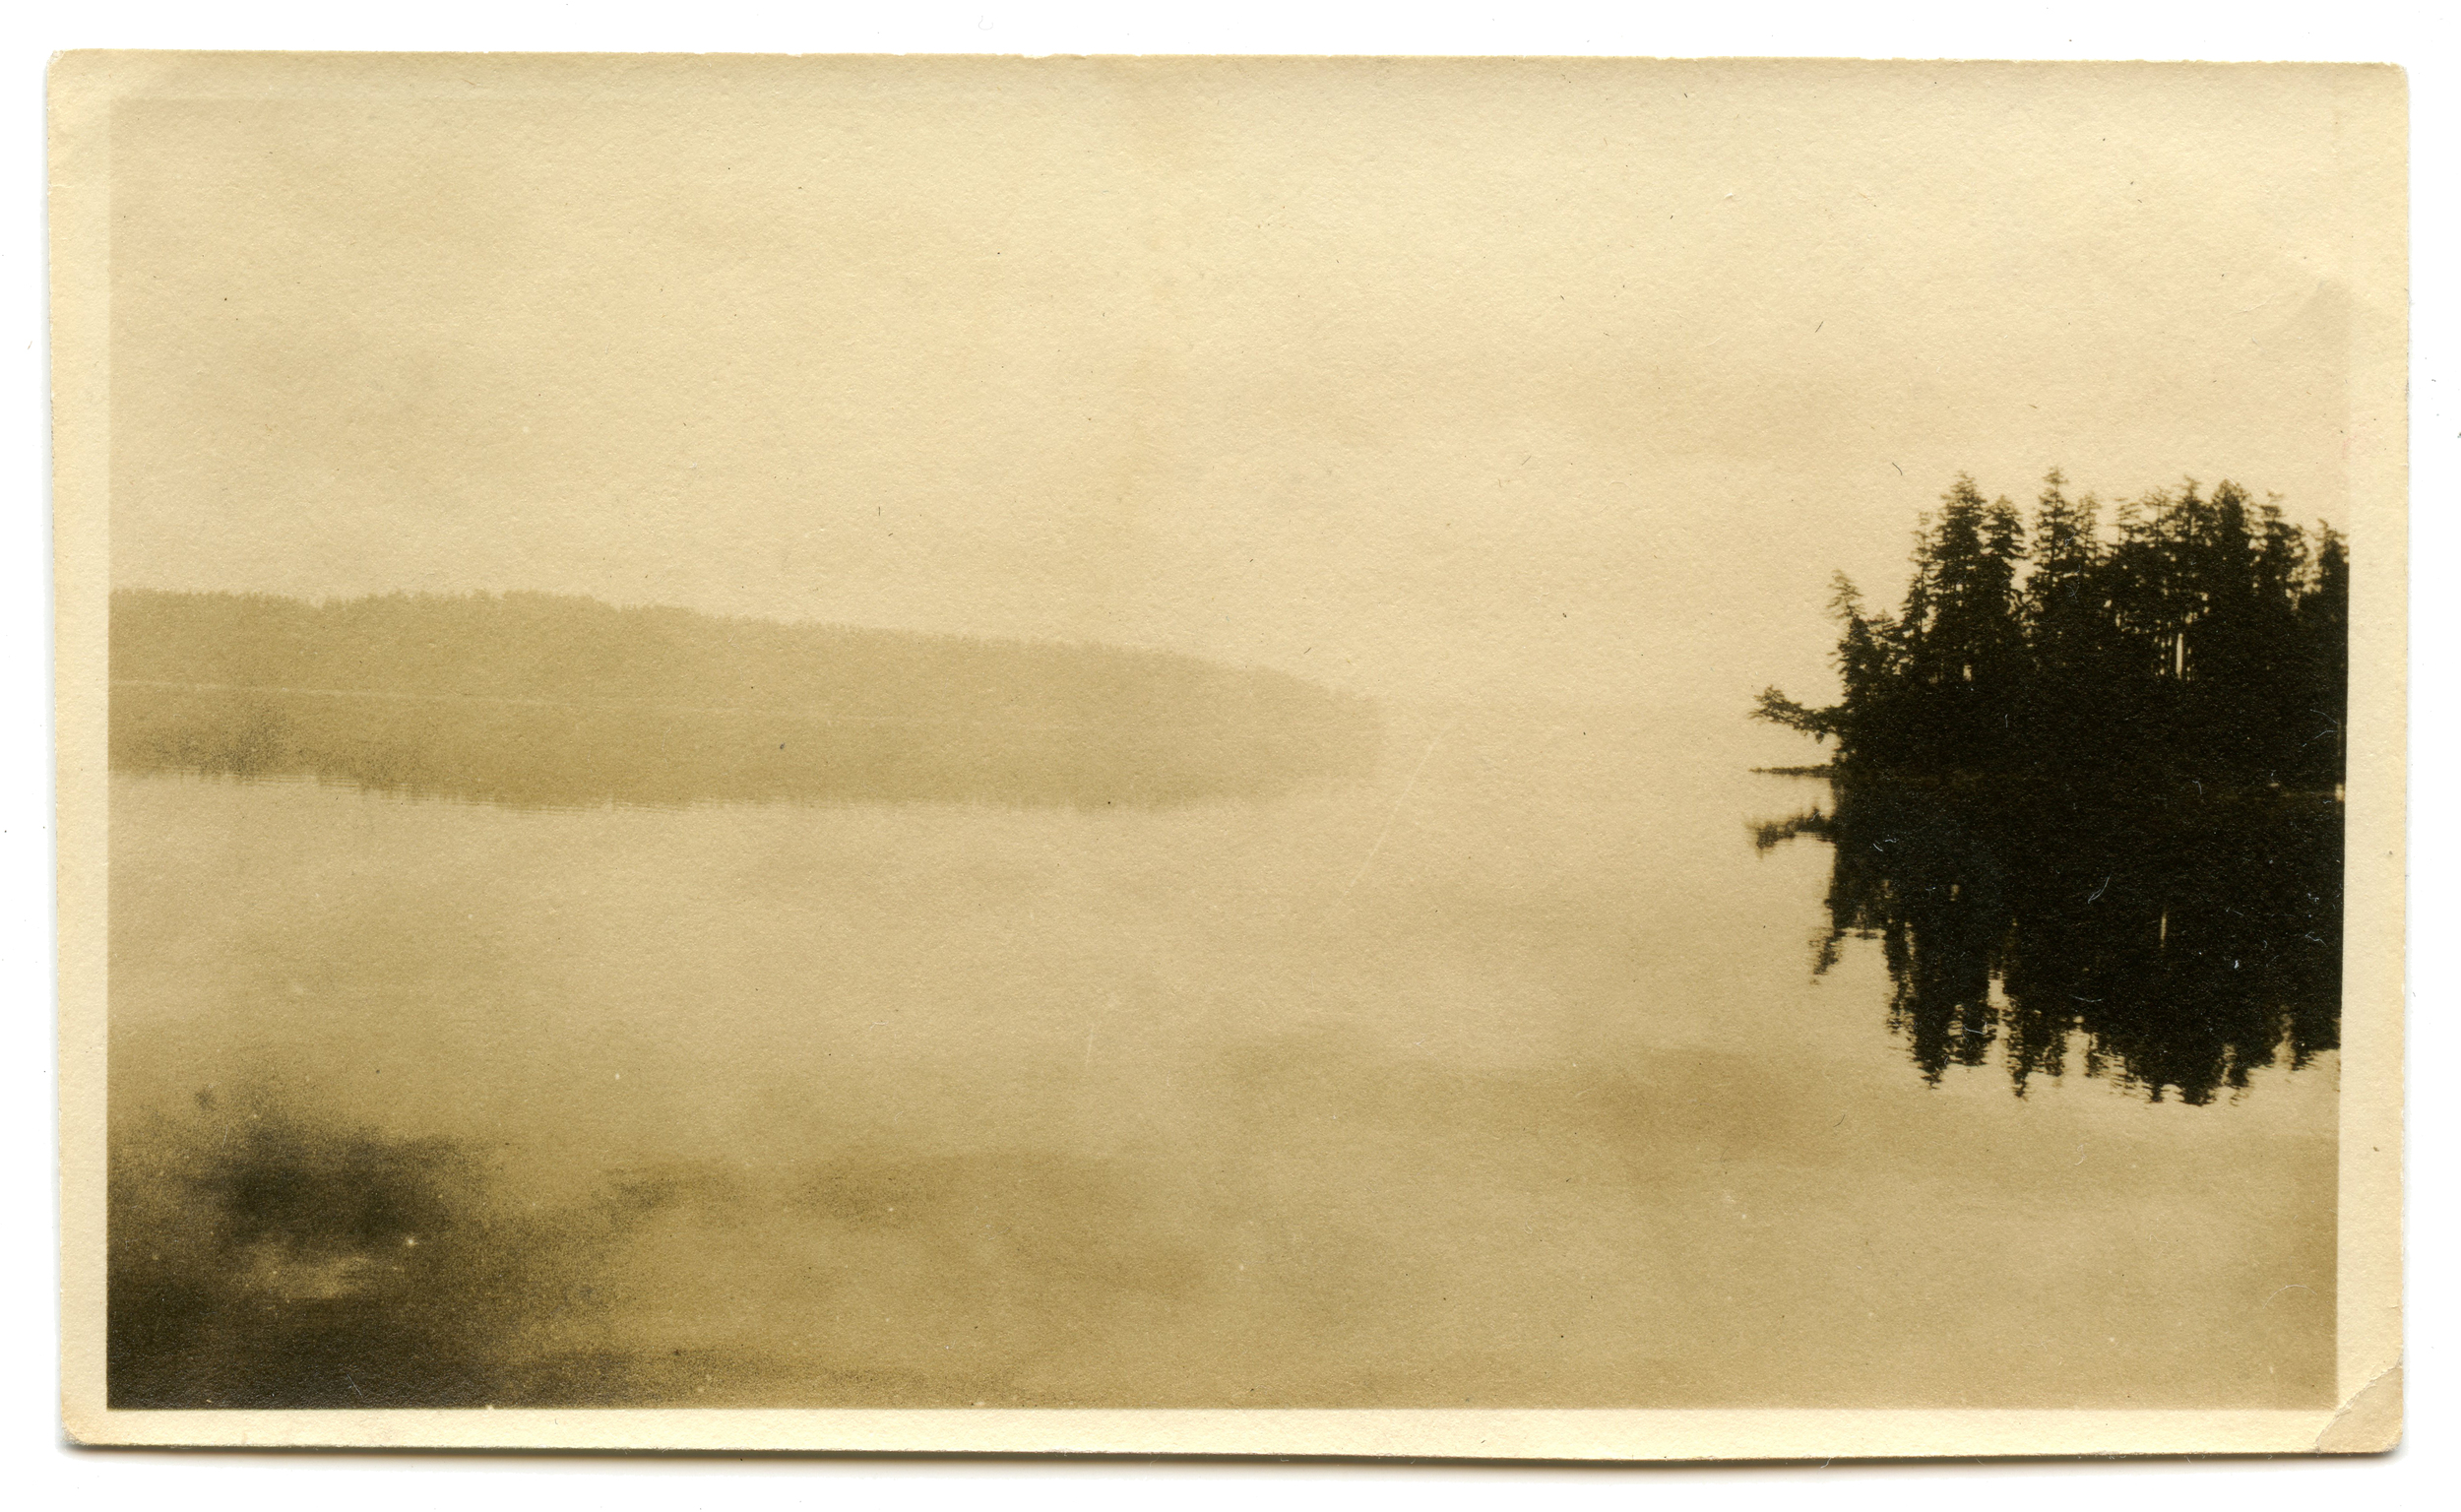 This photograph of a misty lake in the late 1930s reminds me of the American abstract painter Adolph Gottlieb (1903 - 1974).